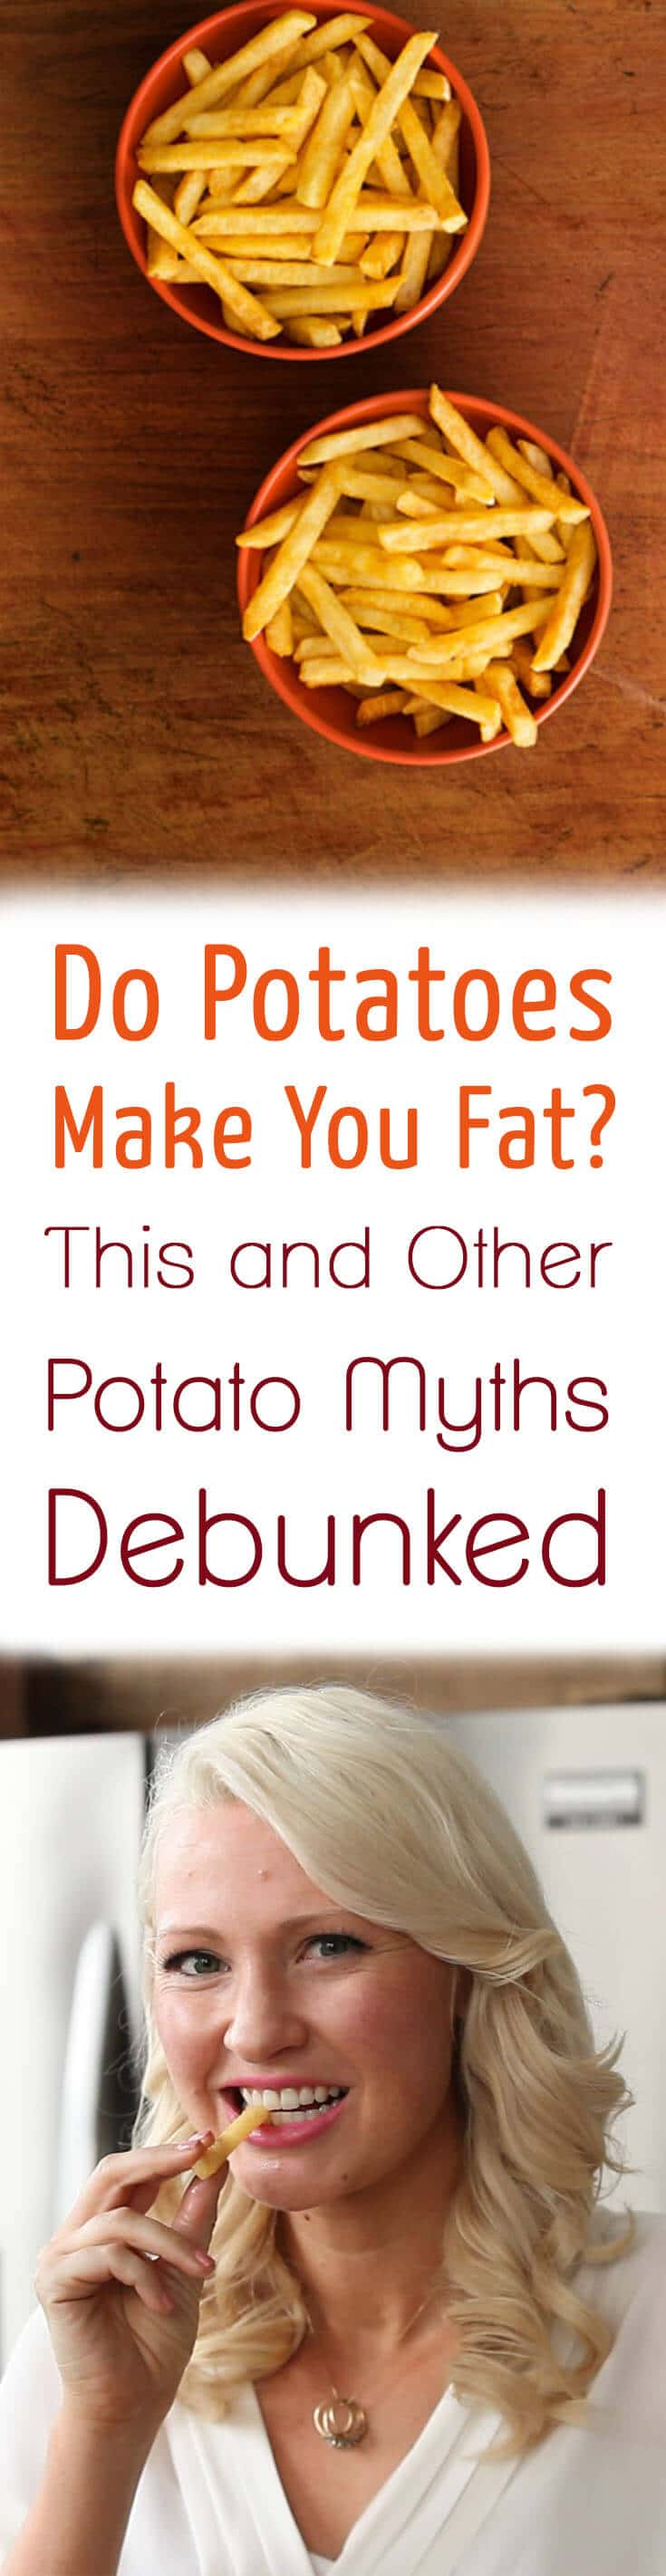 I discuss the top potato myths like do potatoes make you fat and look at the research on why potatoes can be good for your health.